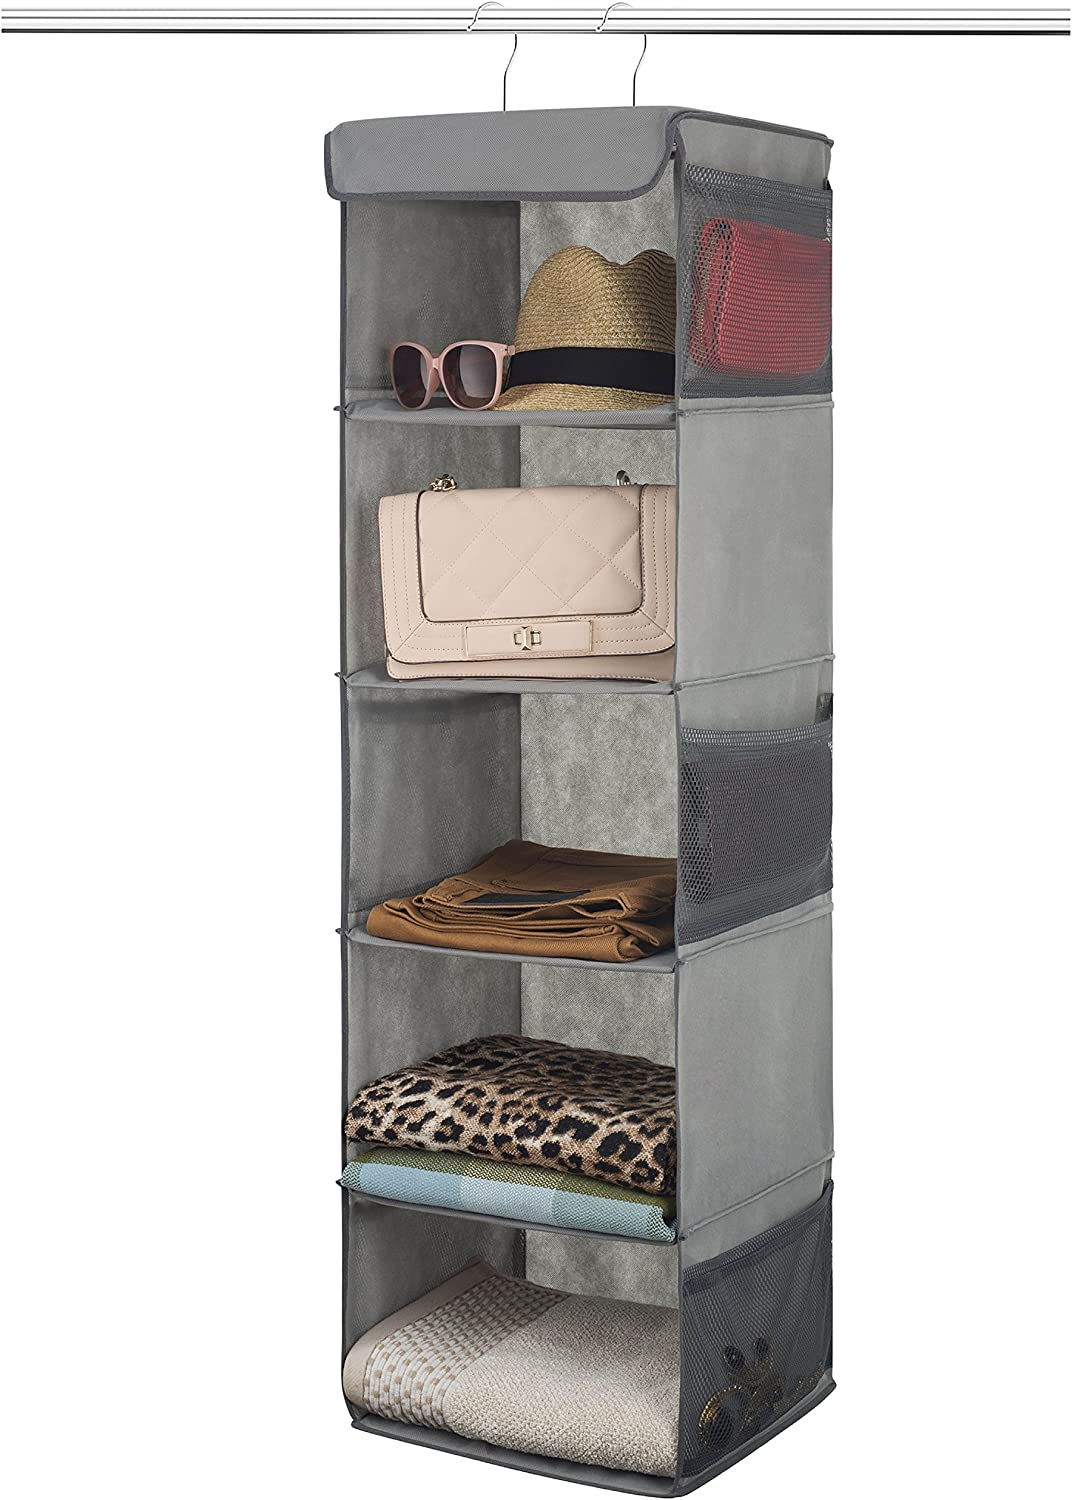 5-Shelf Hanging Wardrobe Storage Organiser - Strong & Durable Hanging Shelves with Metal Hooks - Breathable, Easy Access Closet Storage System with Pockets - Clothes & Shoes Hanging Cupboard Storage